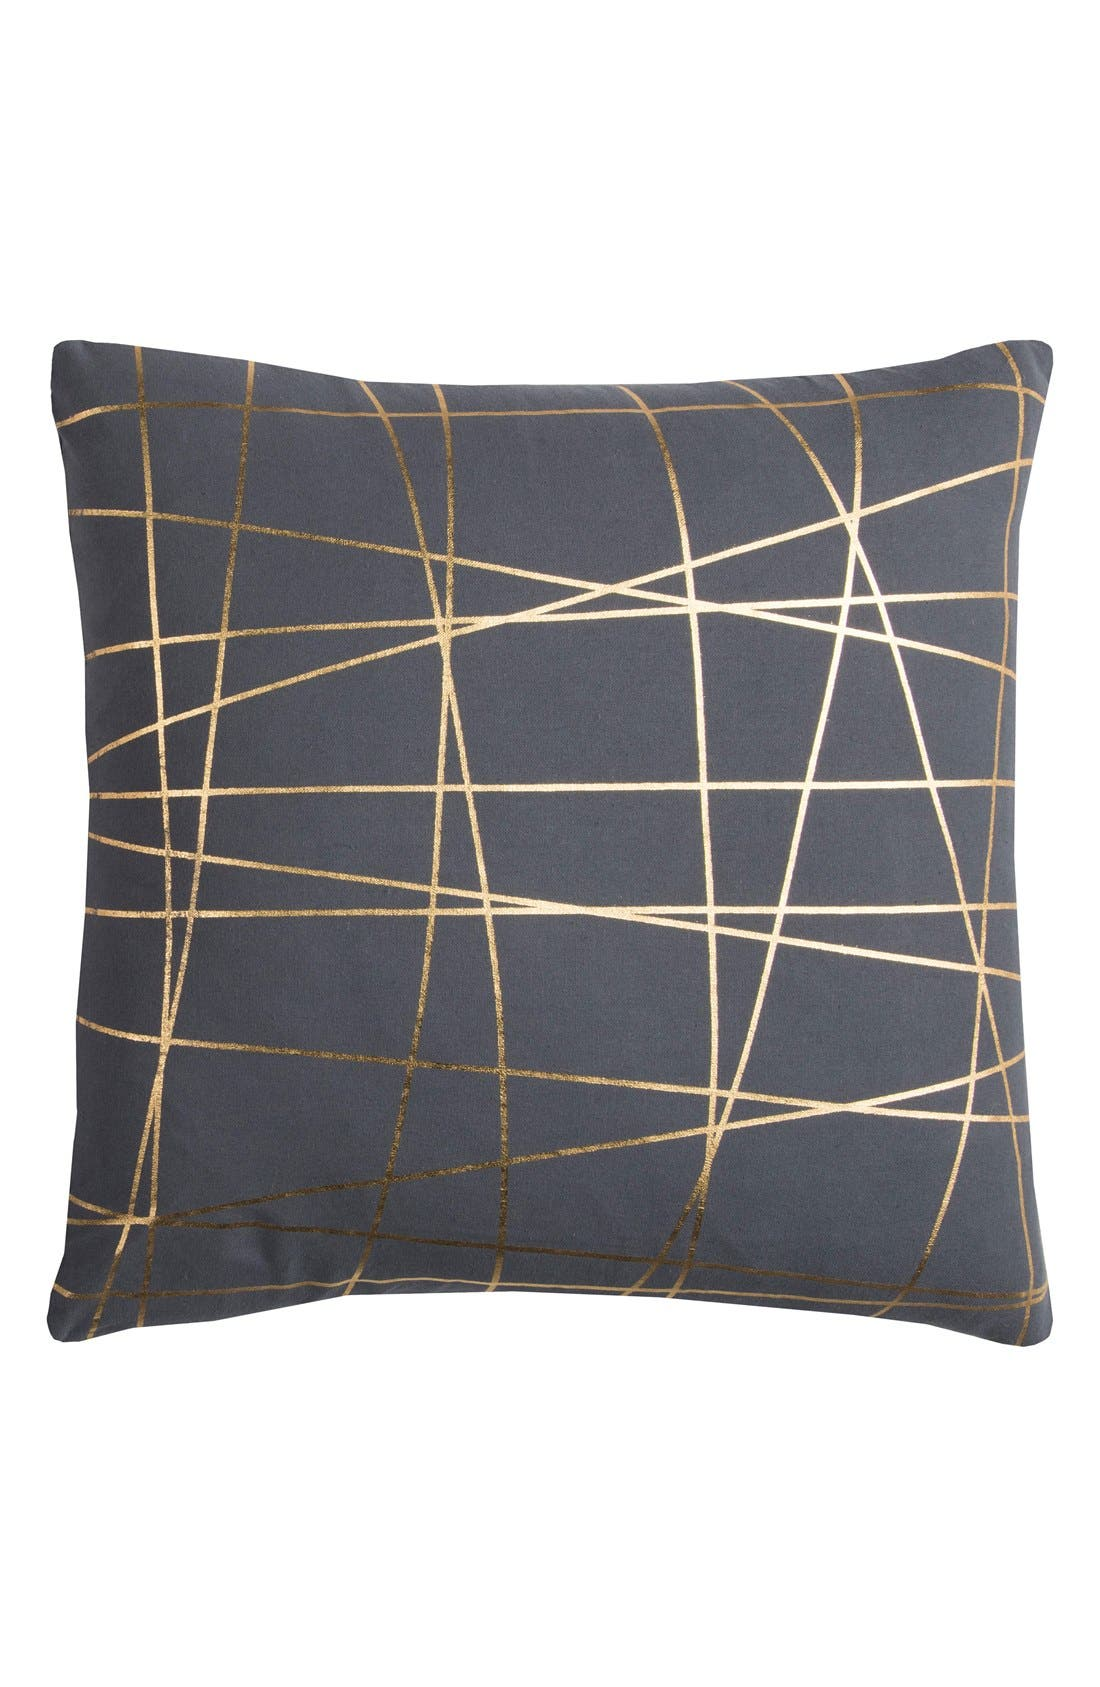 Alternate Image 1 Selected - Rizzy Home Metallic Lines Accent Pillow